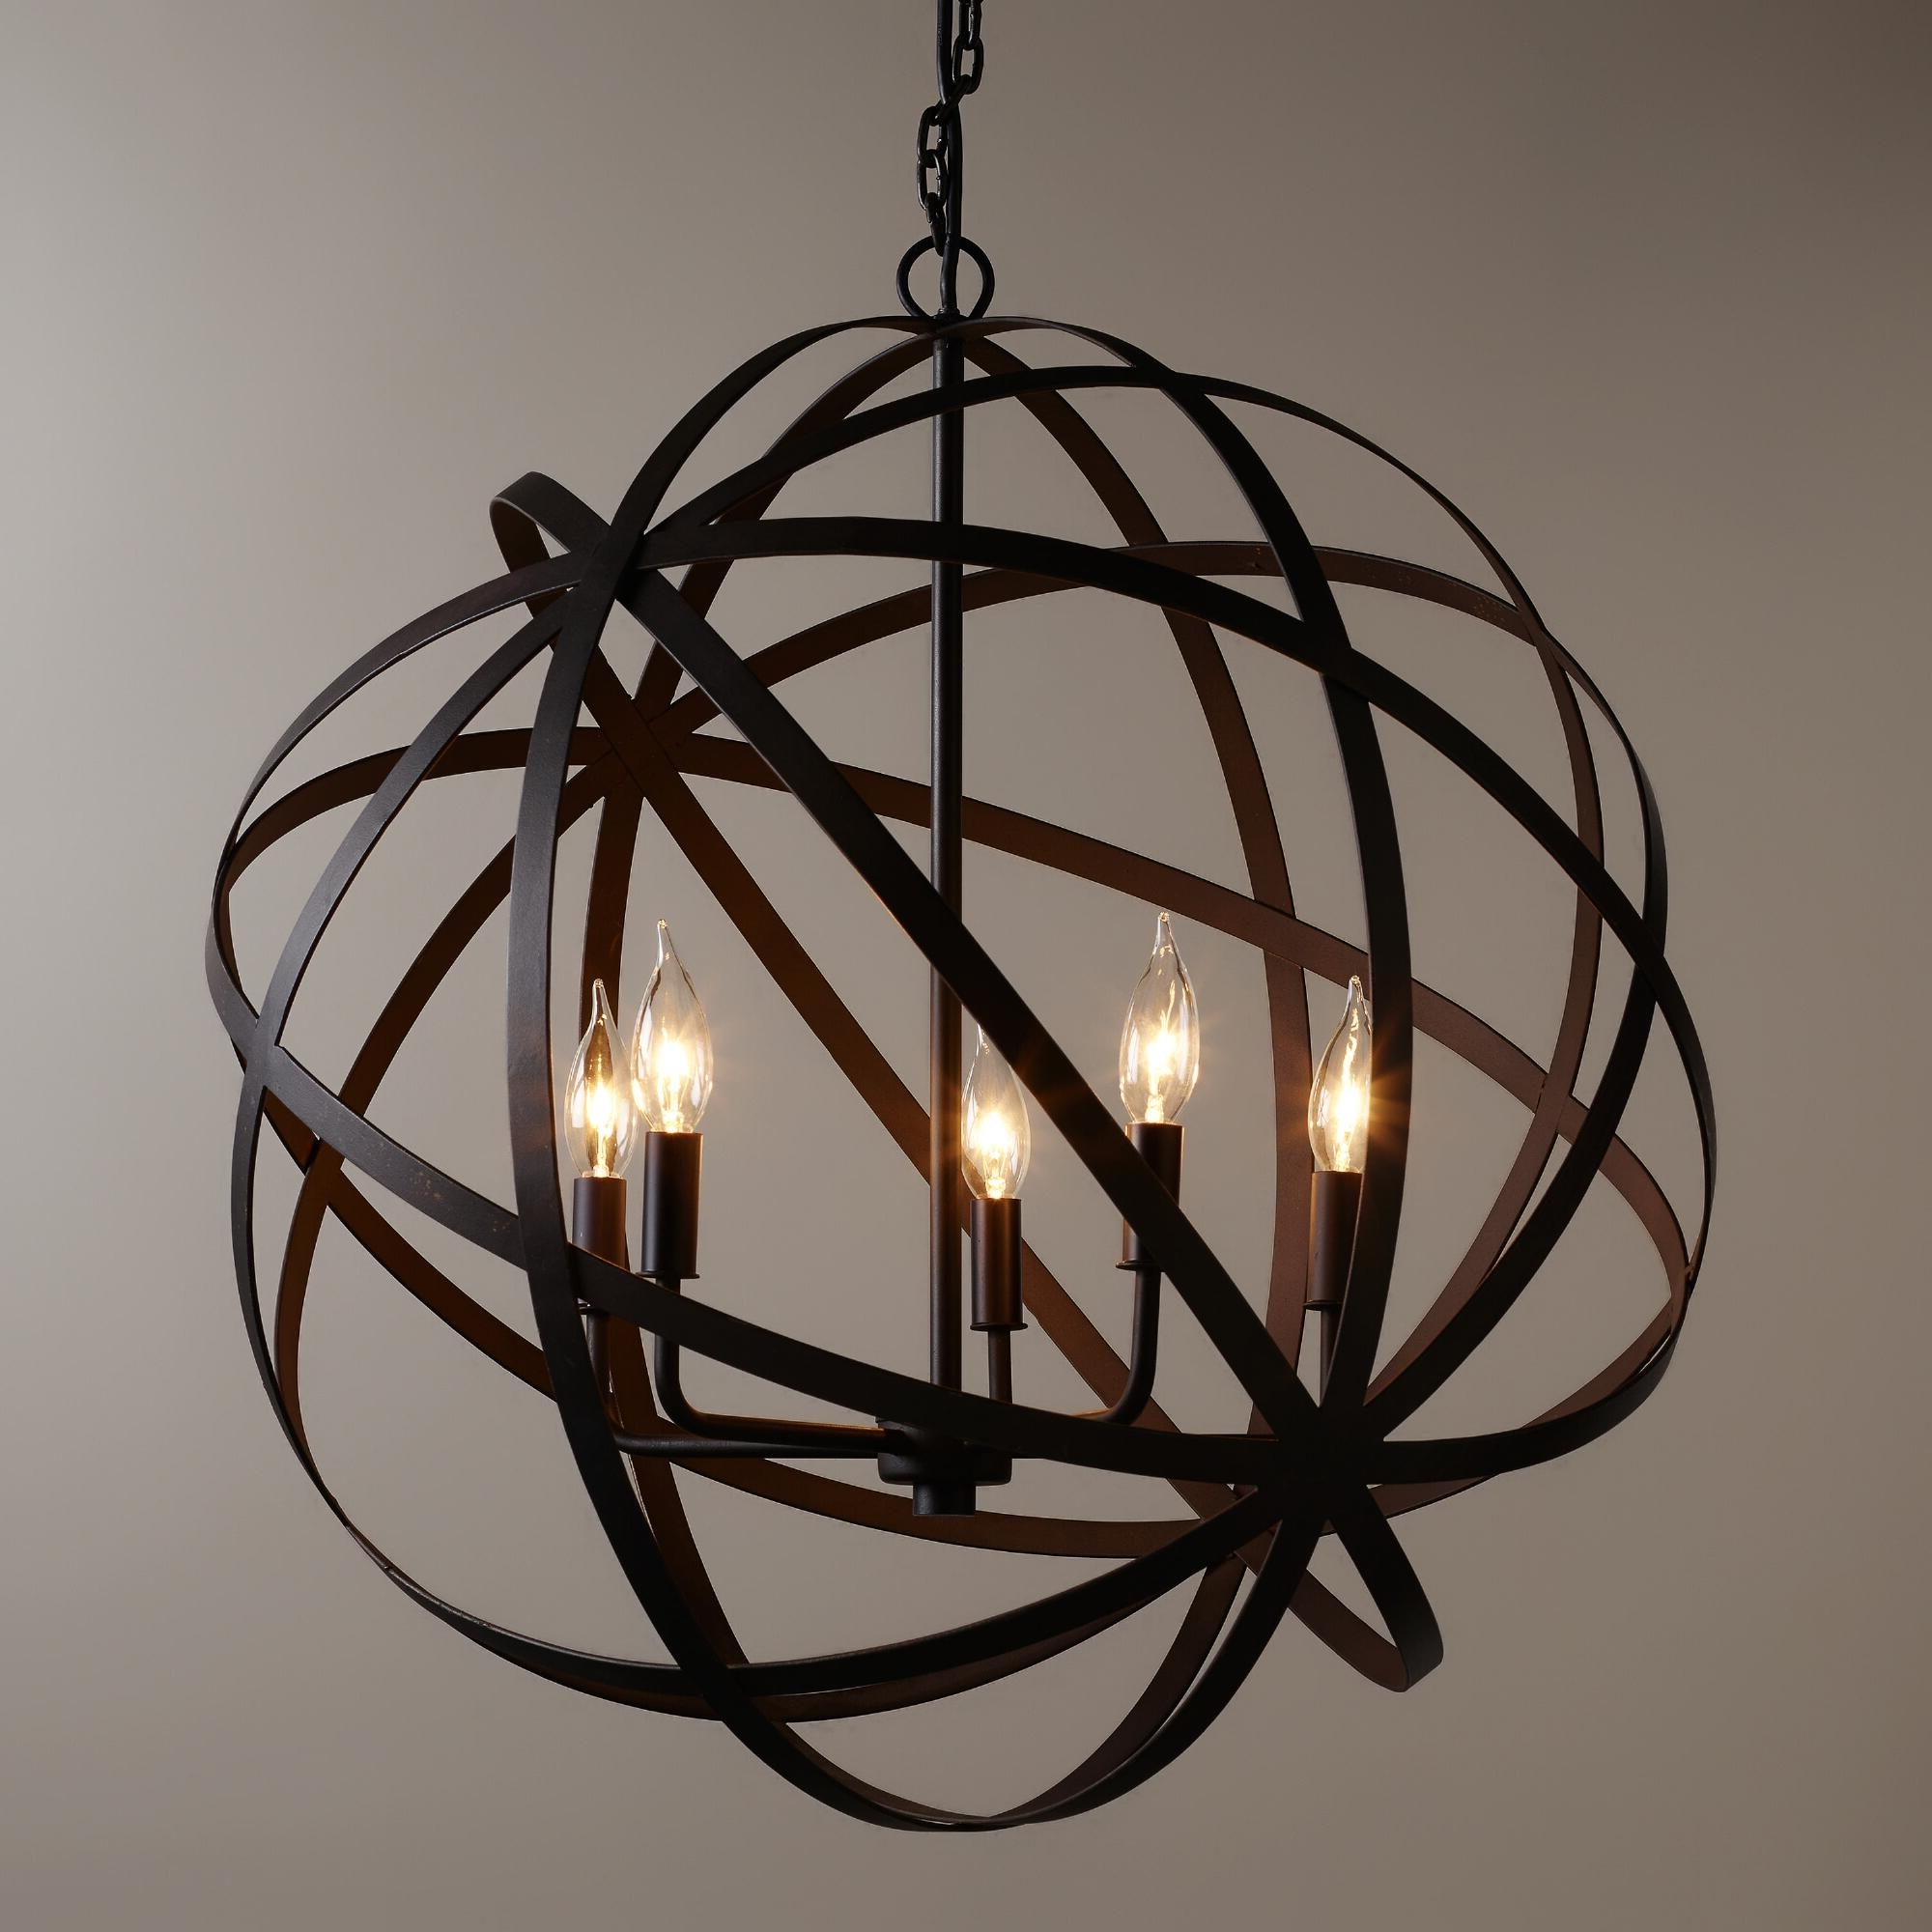 Light : Creative Orb Chandelier About Interior Designing Home Ideas With Fashionable Metal Chandeliers (View 8 of 20)